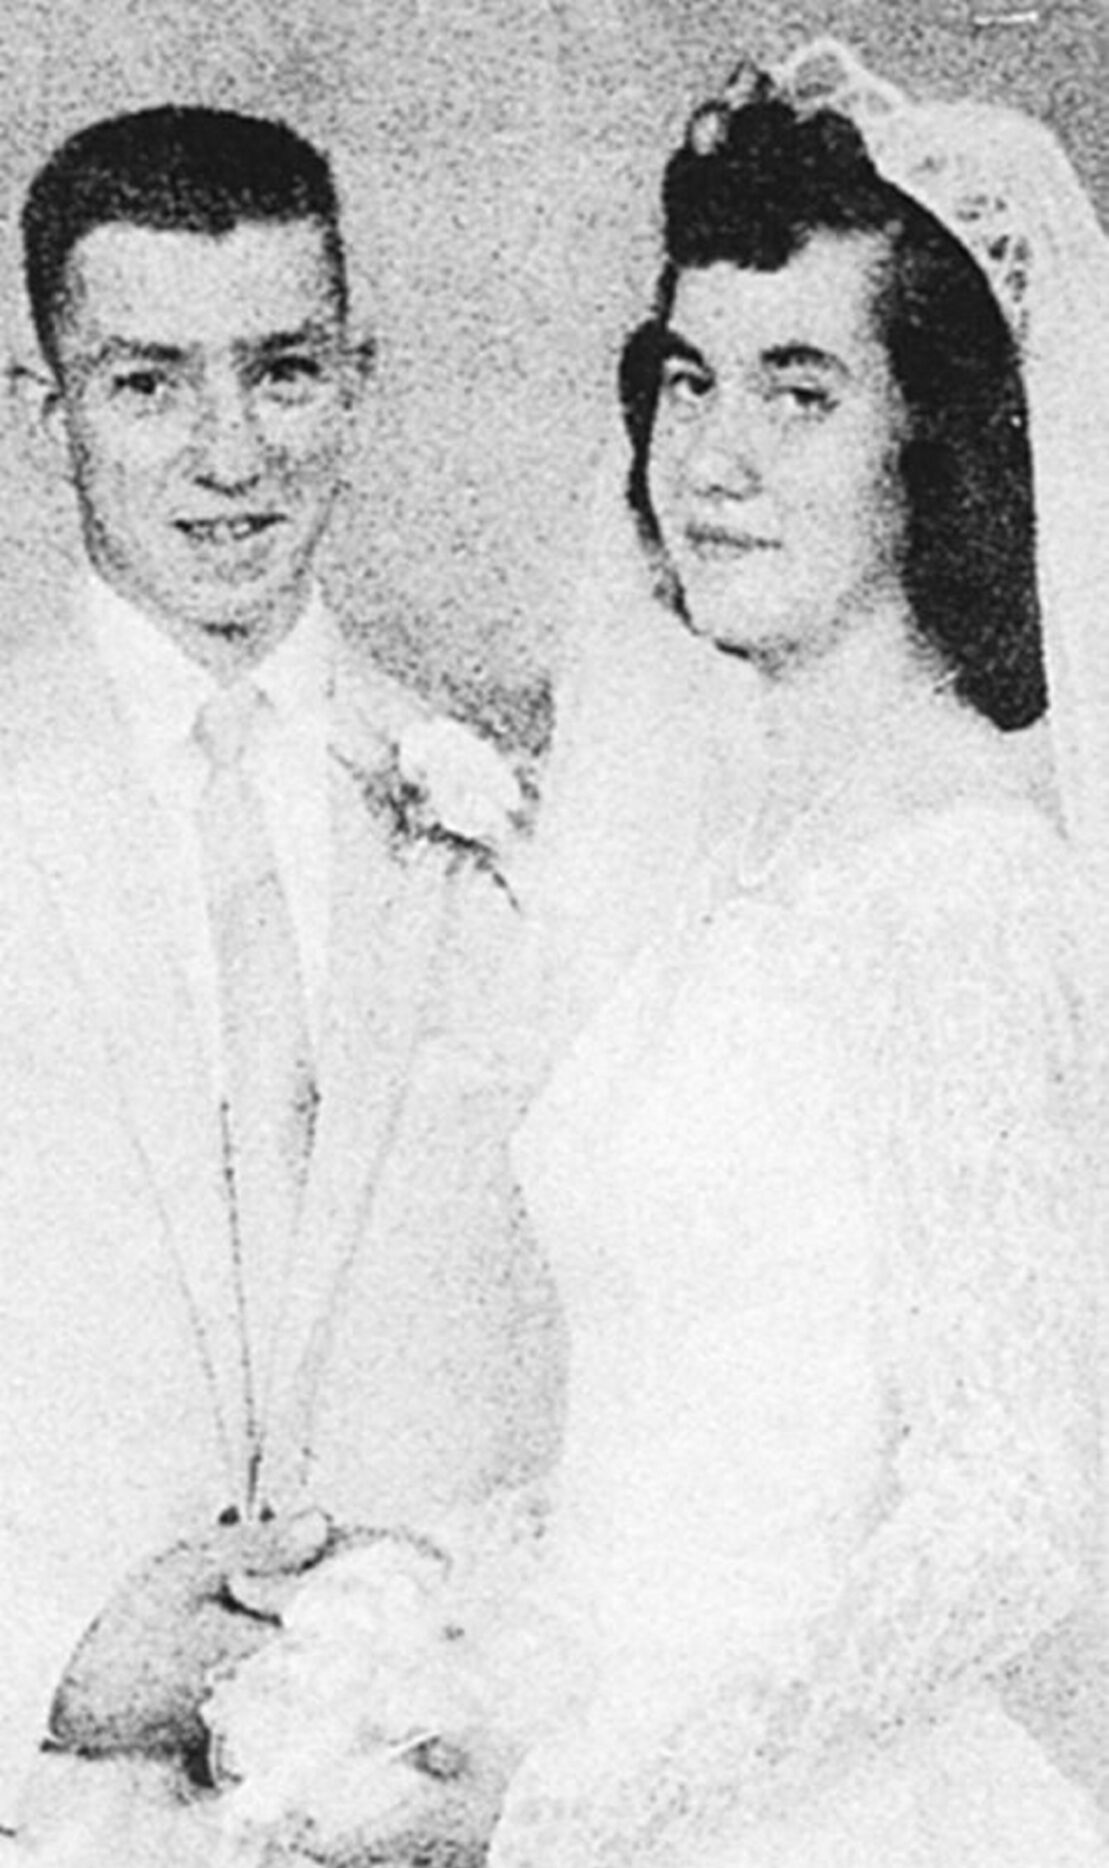 Mr. and Mrs. Duane F. Brouty, 60 years